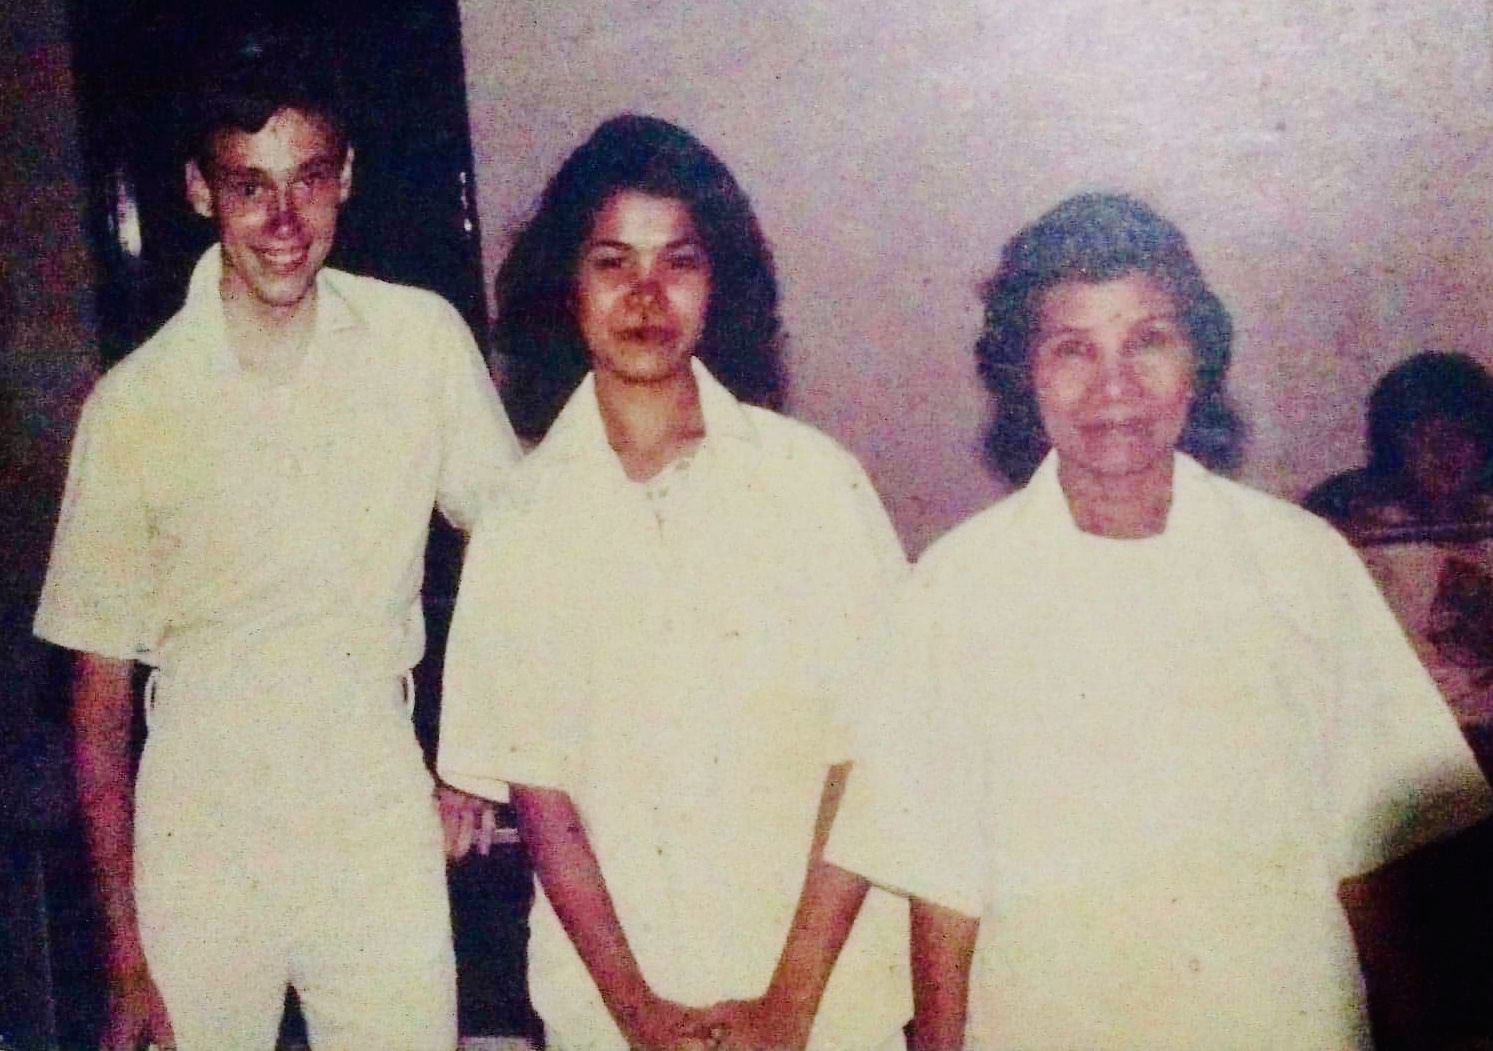 Cora Jardeleza, center, and her mother, Concepcion Jardeleza, are joined by Elder Keith Eager, left, at the Jardelezas' baptism in Bacolod, Philippines, in 1980.